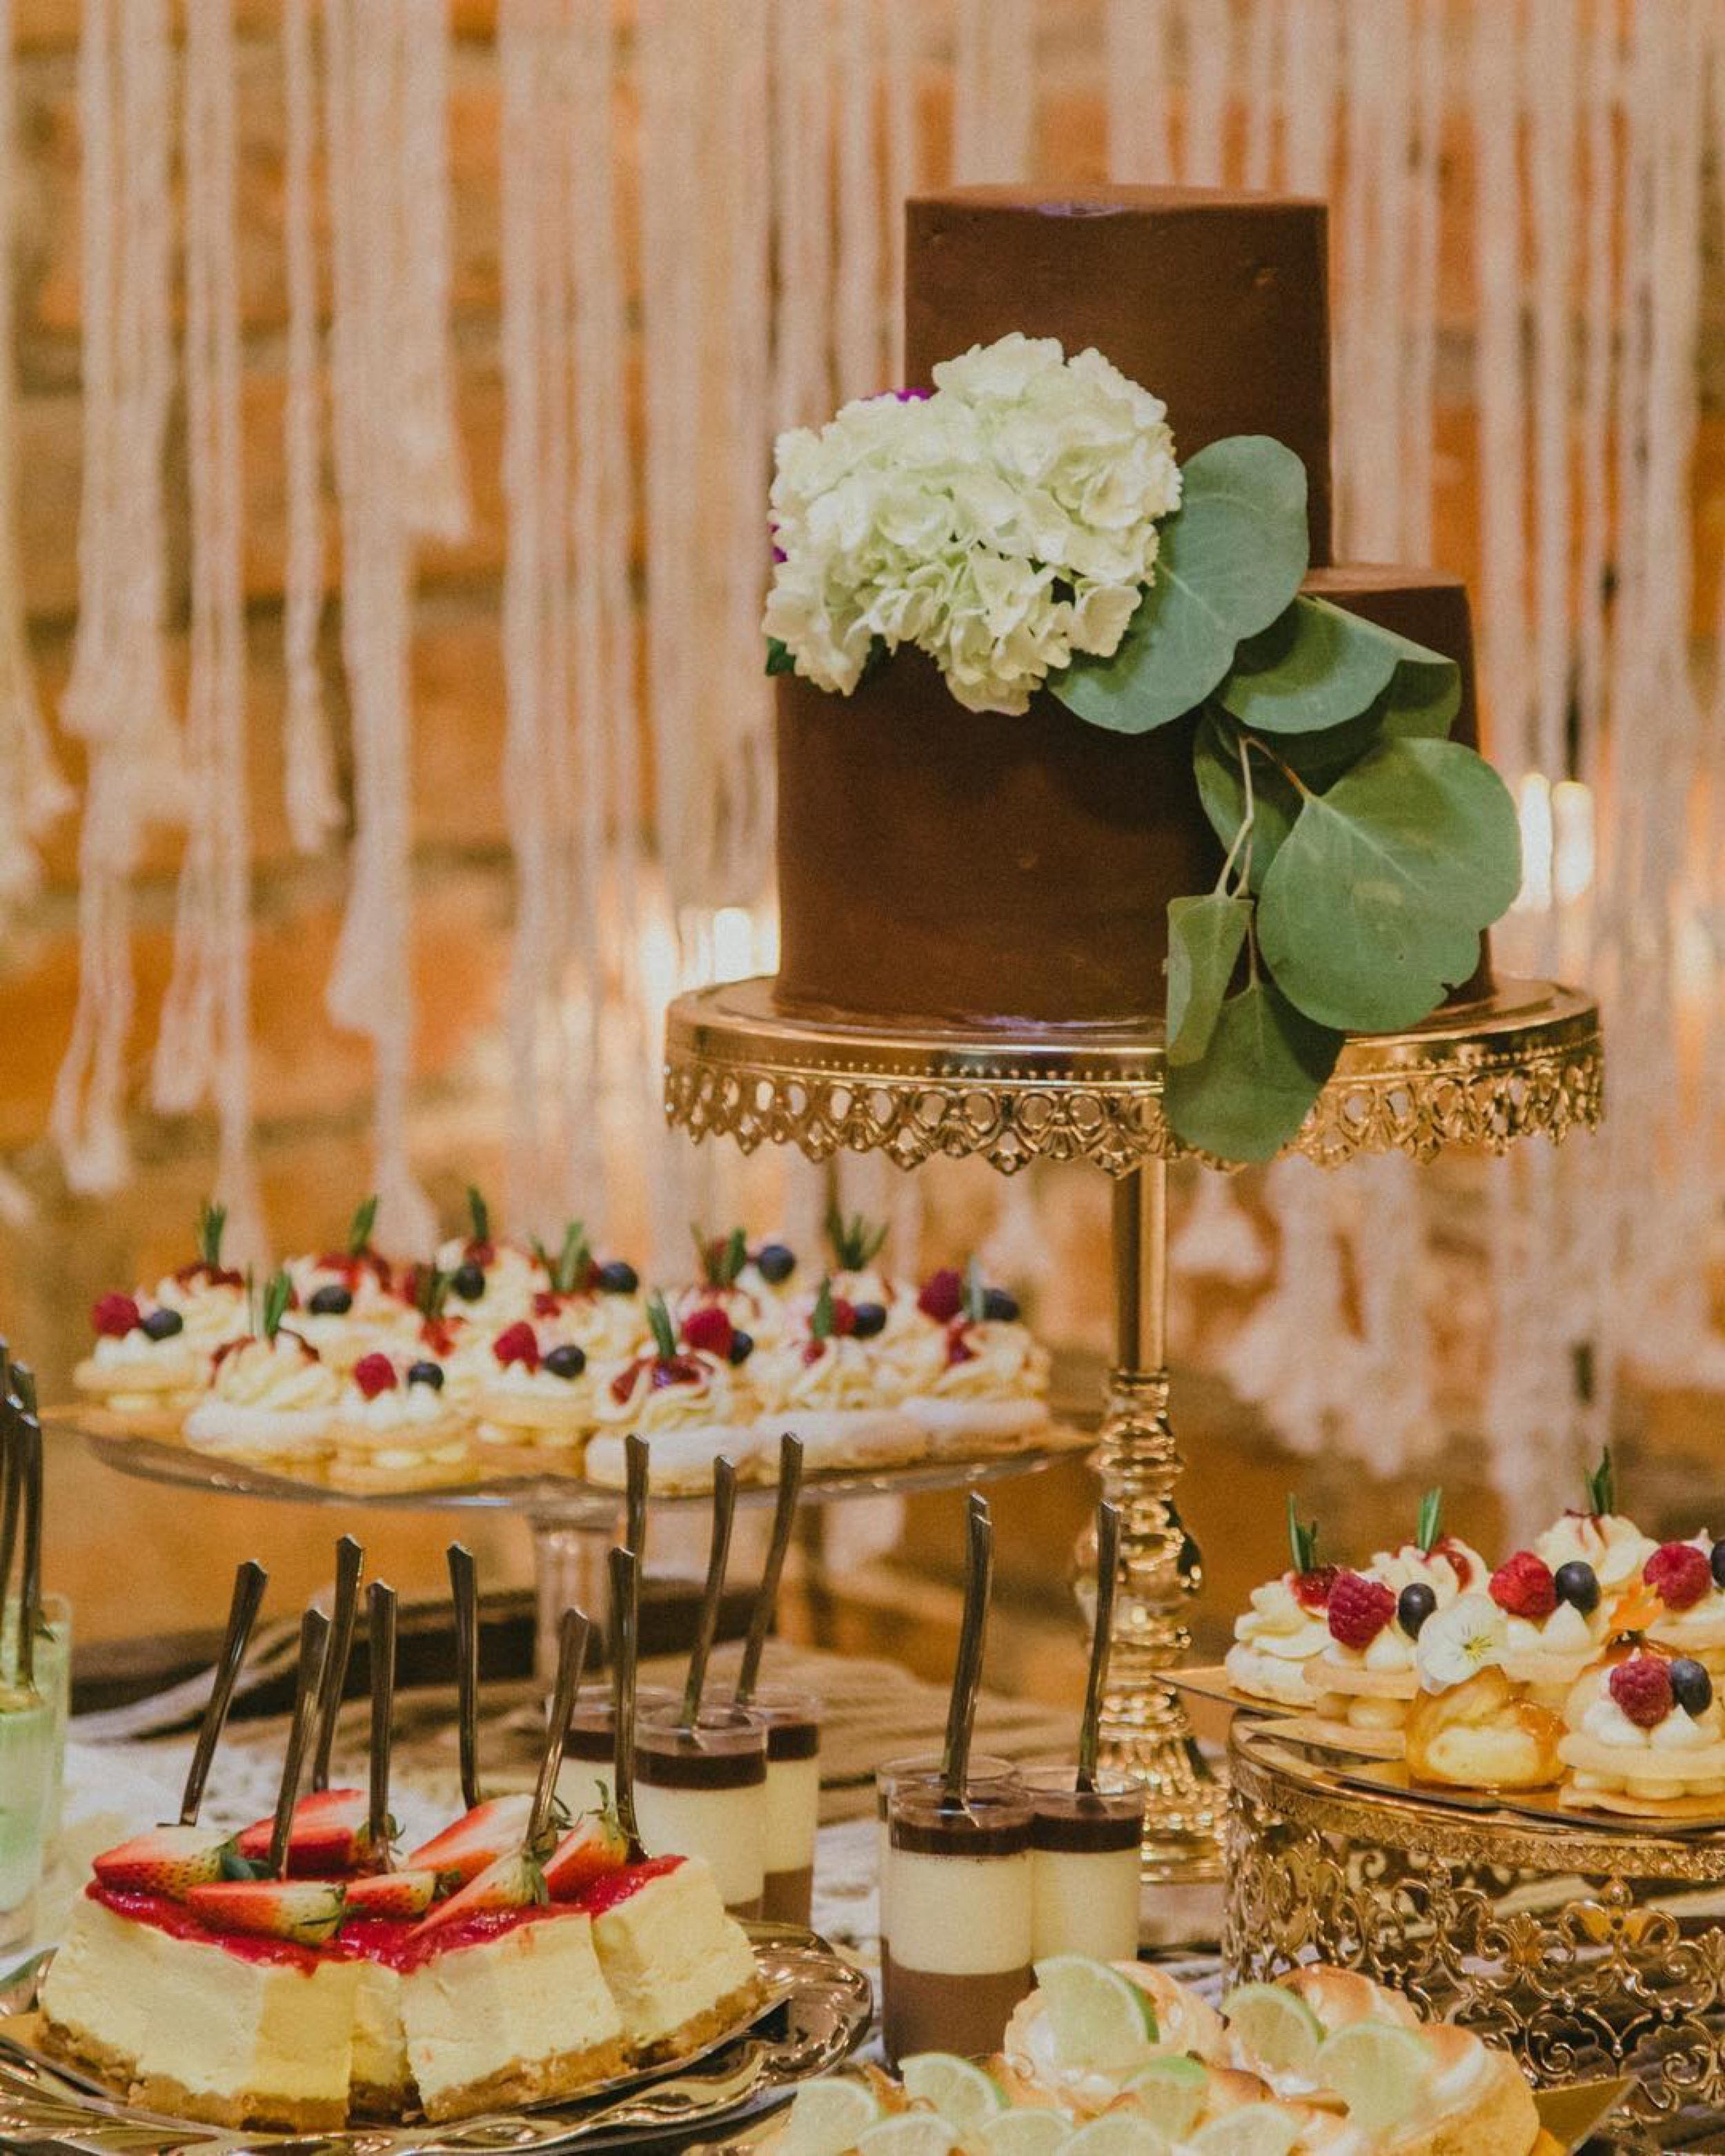 cake by @cakehomereposteria opulent treasures shiny gold cake stand.jpg